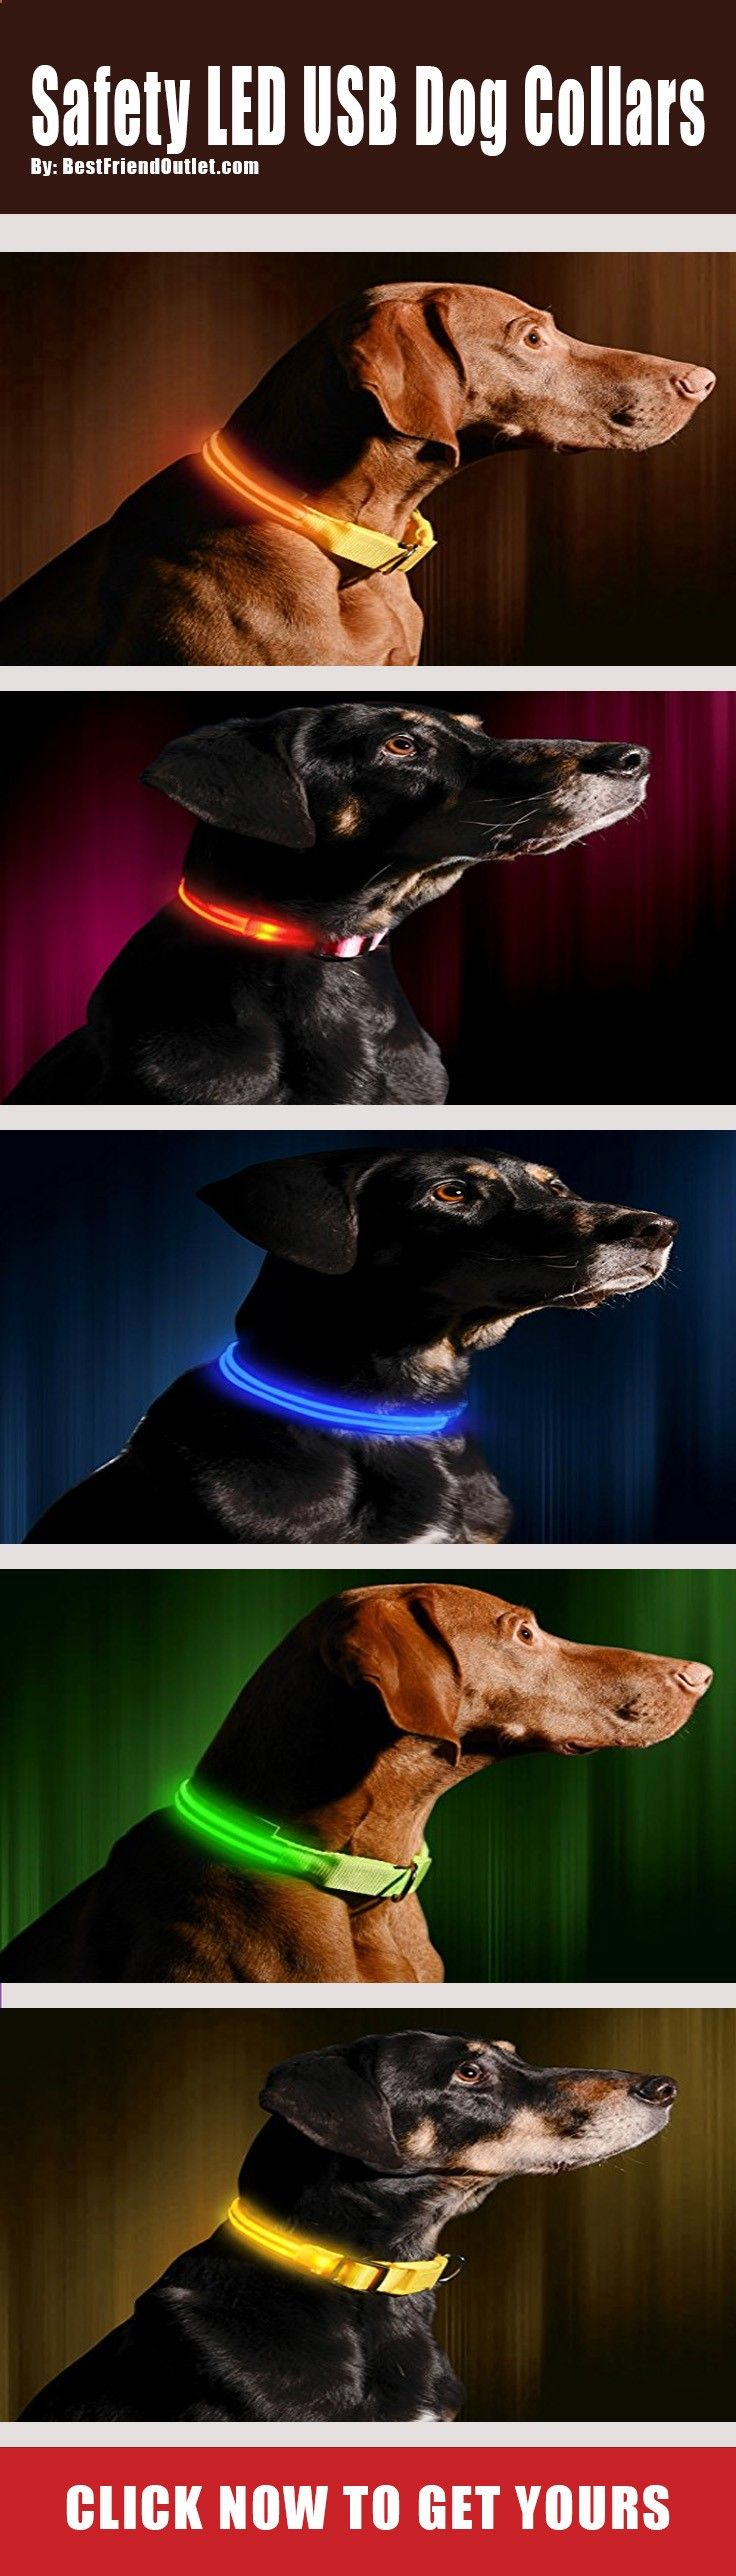 $30.99 - Get Our LED Safety Dog Collars That Are Perfect For Always Making Sure Pets Are Seen. Quit Trying to Make The Perfect Homemade DIY Personalized Dog Collar & Check Out This Safety Collar.